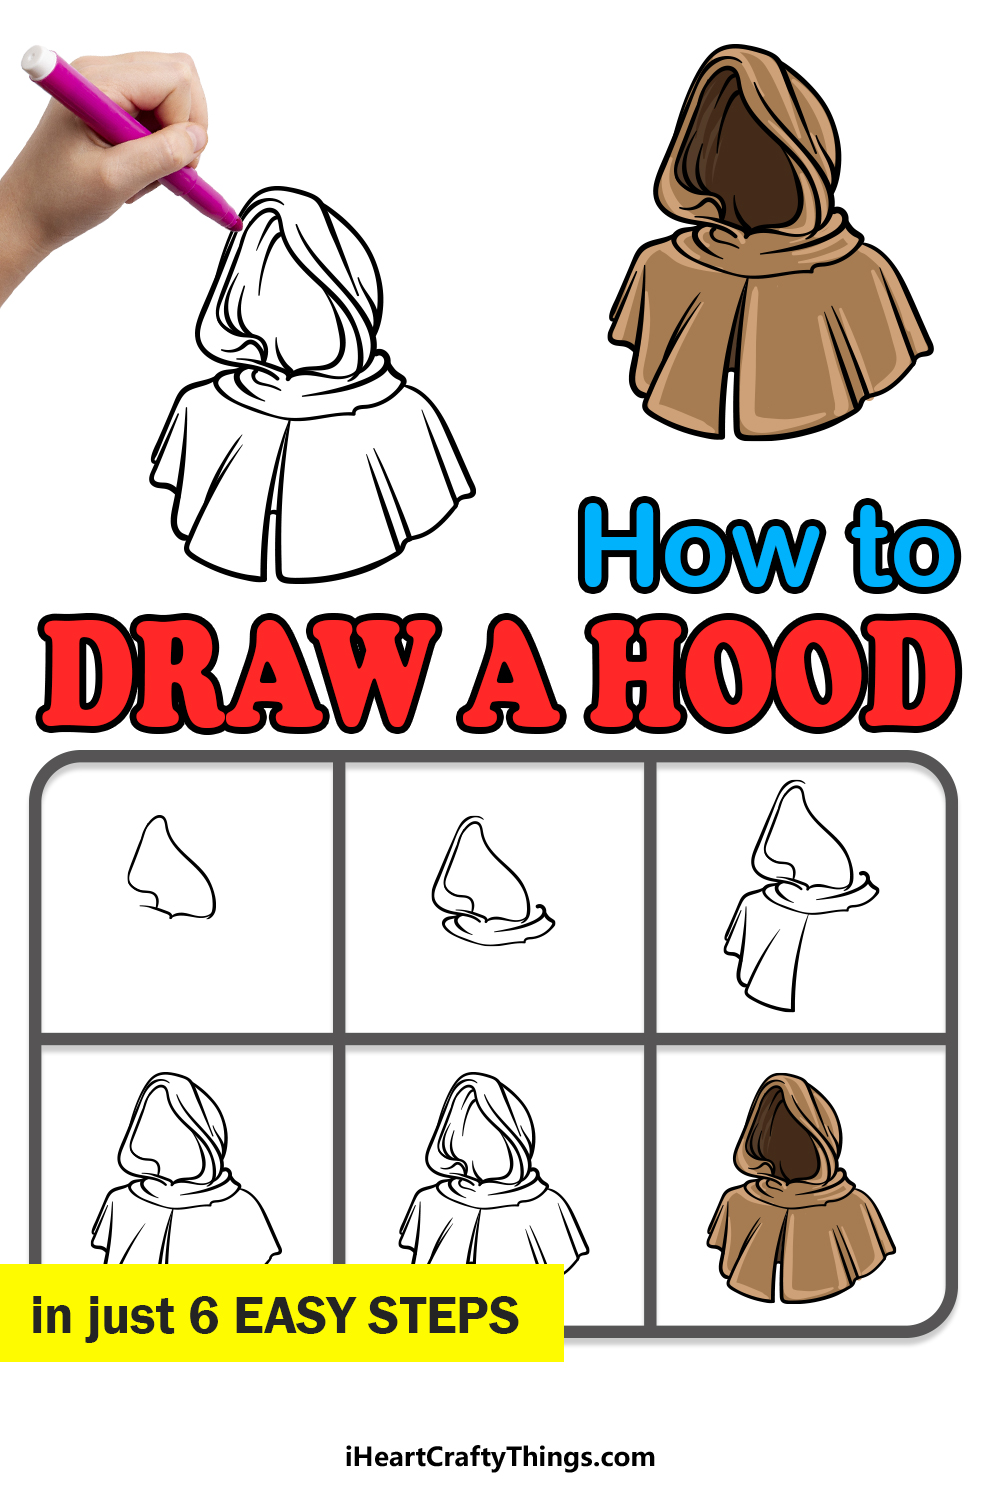 how to draw a hood in 6 easy steps